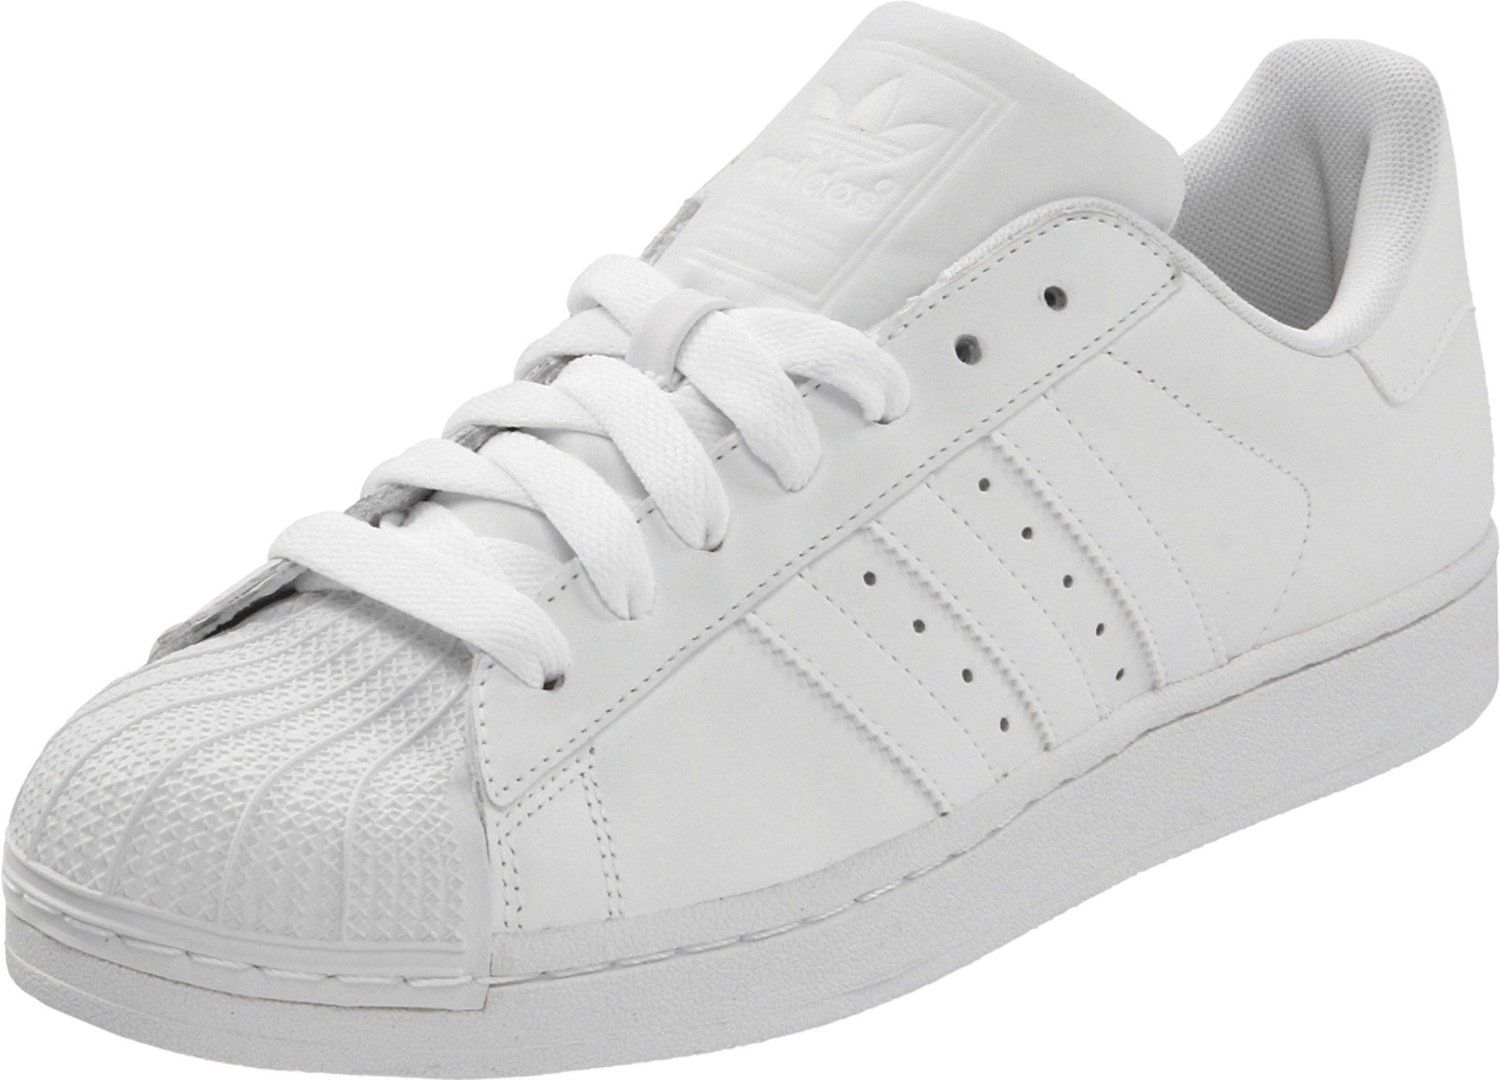 1000+ images about shoes on Pinterest | Adidas superstar, Adidas and Adidas  superstar womens